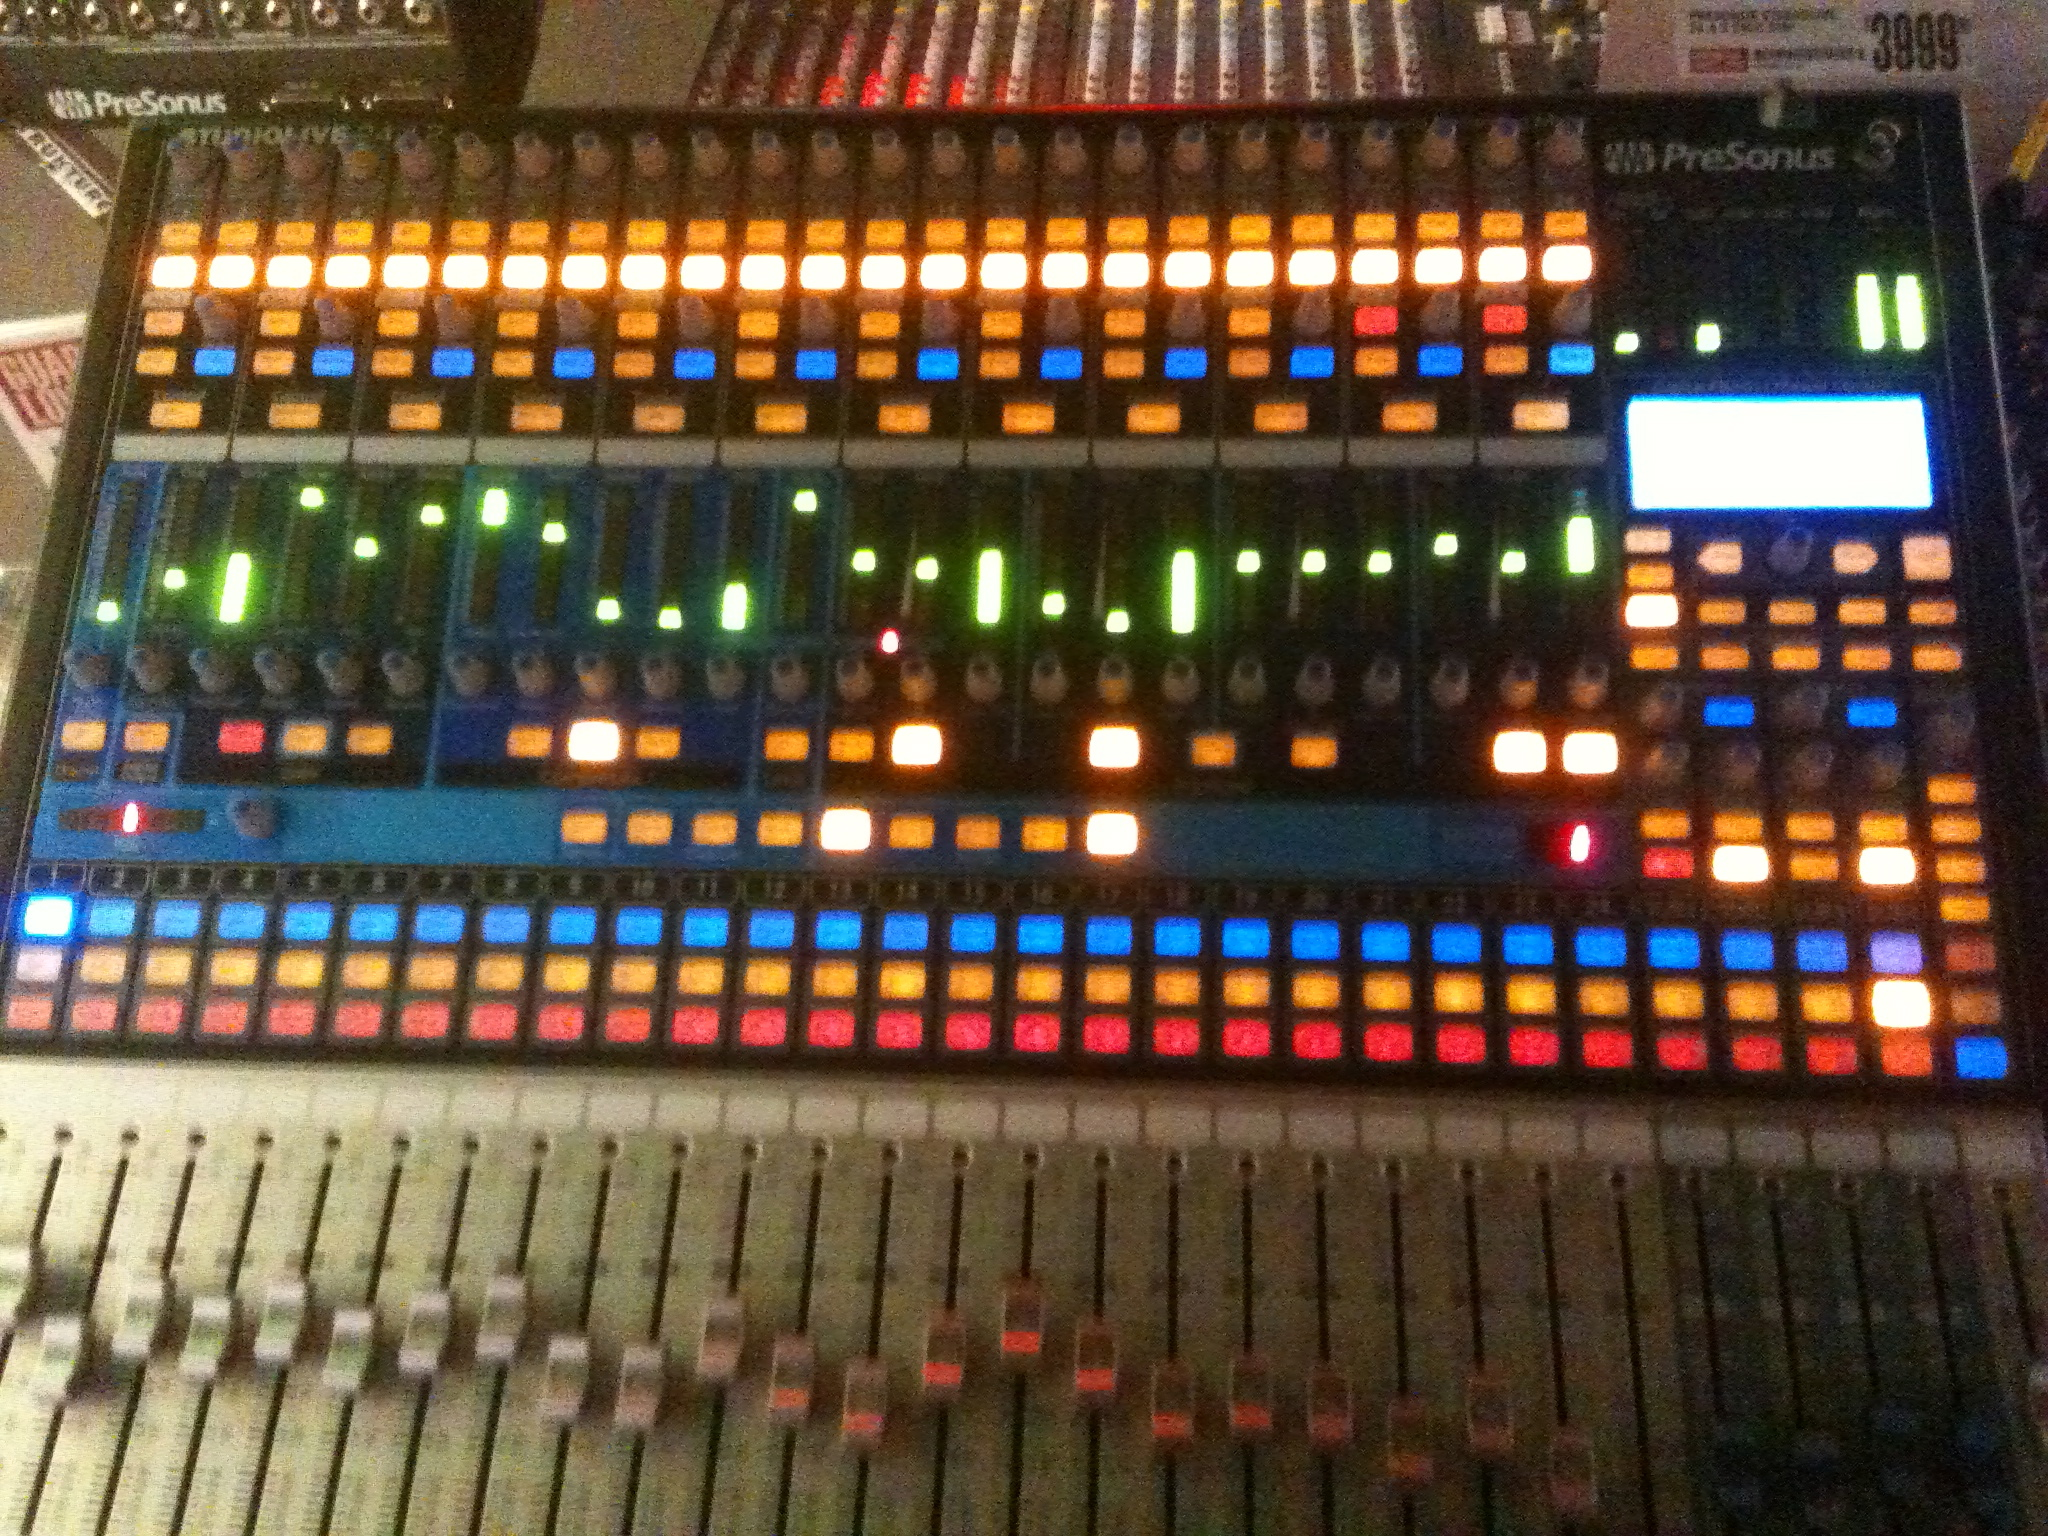 Gawing over a new PreSonus console